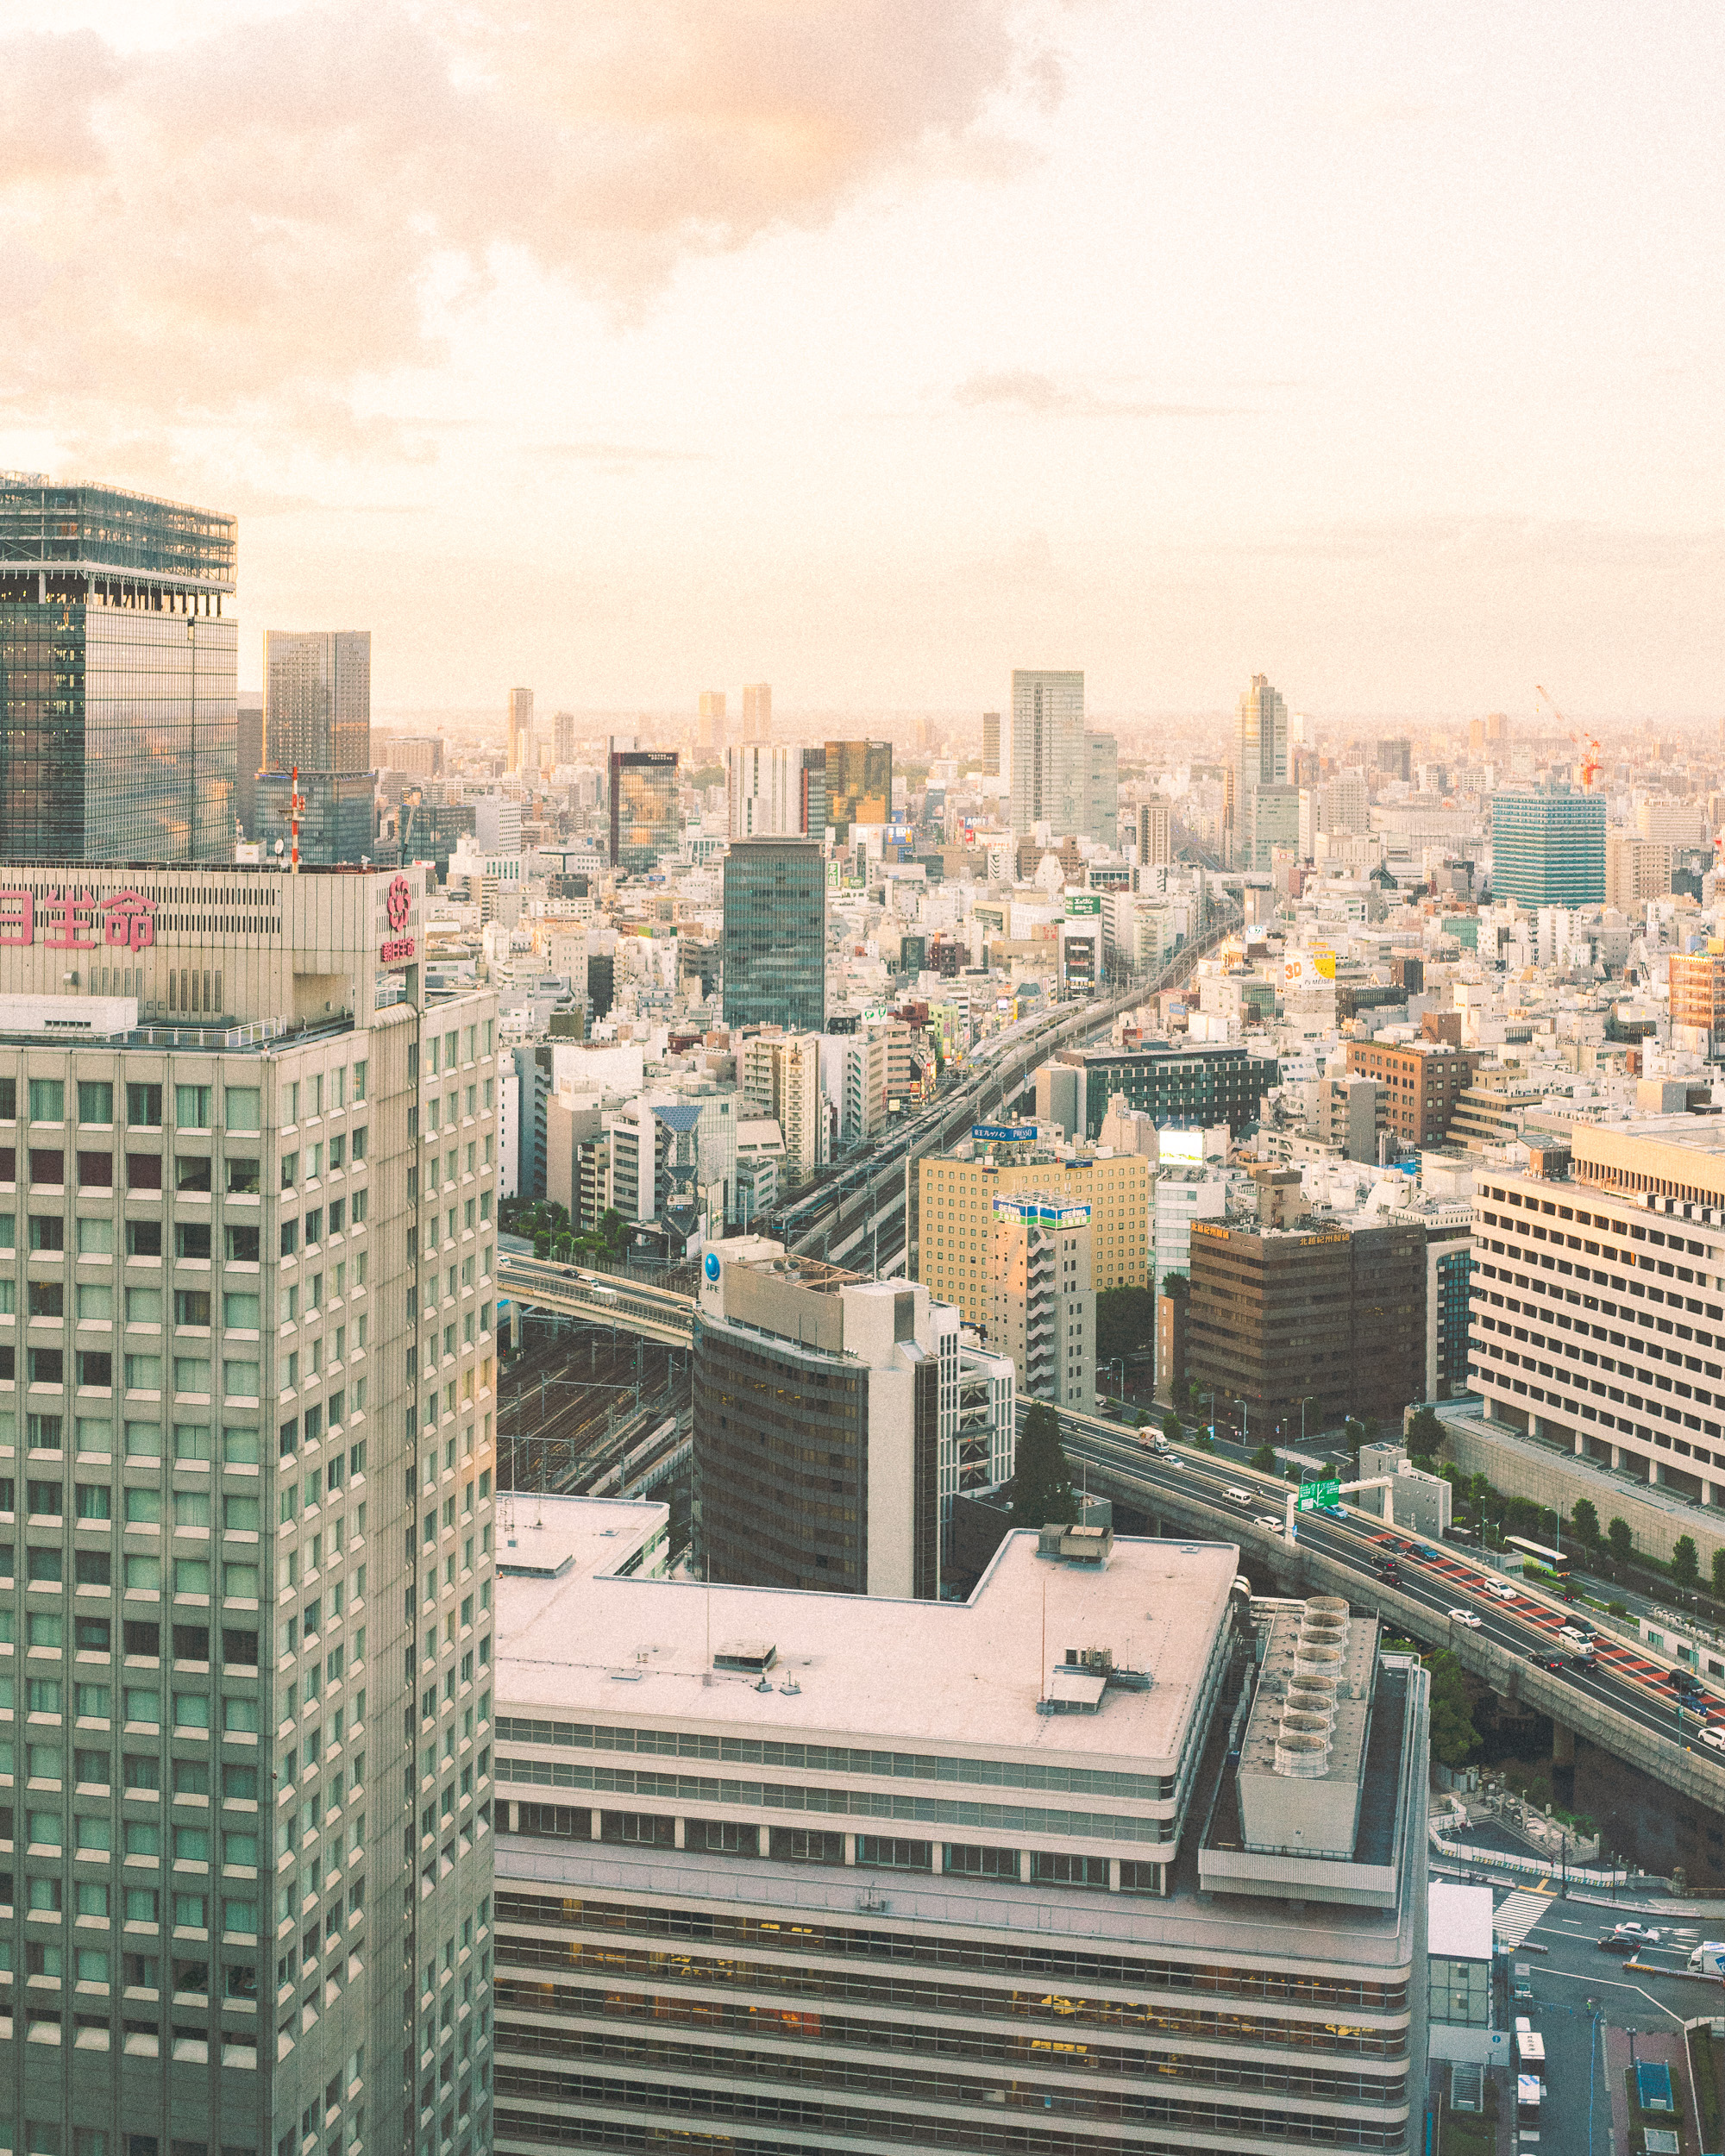 The Complete Tokyo Travel Guide | City Guides | Japan Travel Itinerary | Chiyoda Neighborhood Travel Tips | Shangri La Hotel Tokyo Nadaman | Skyline City Views at Sunset Tokyo